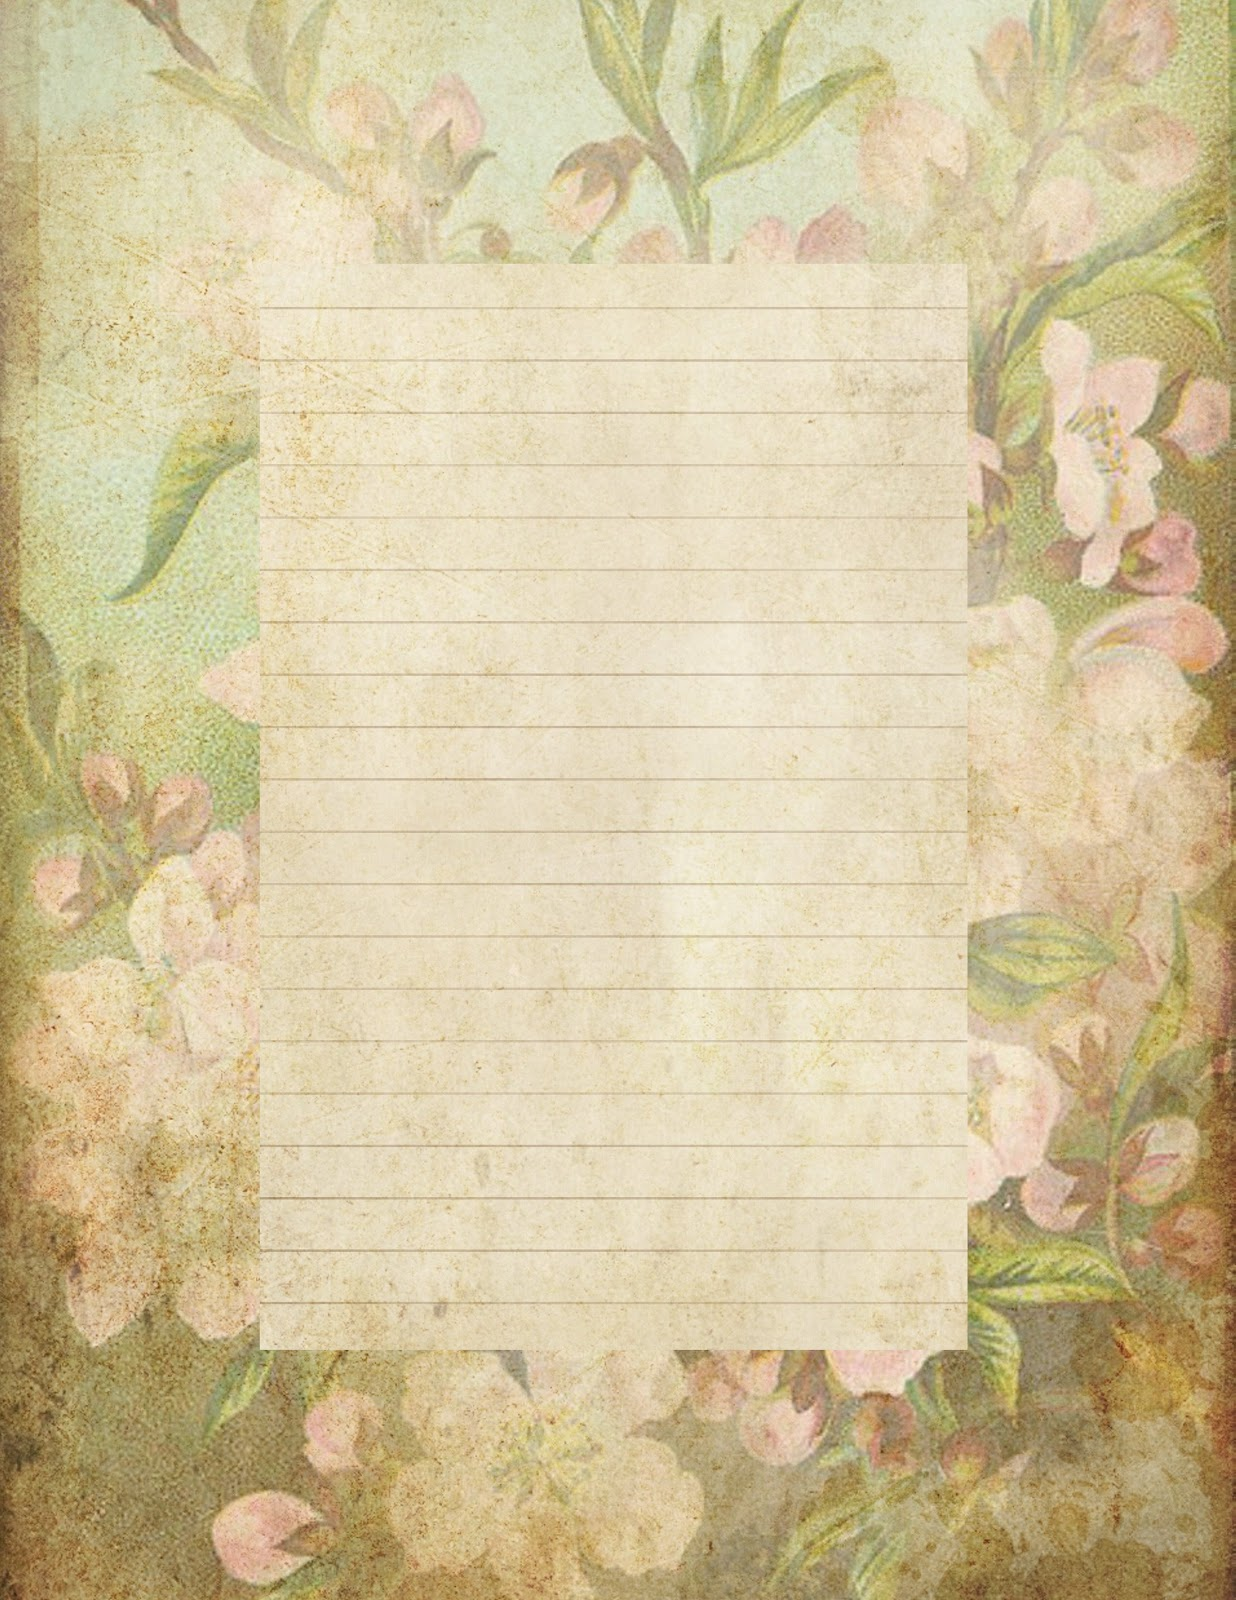 Lilac Lavender Antiqued lined paper Stationery – Lined Stationary Paper